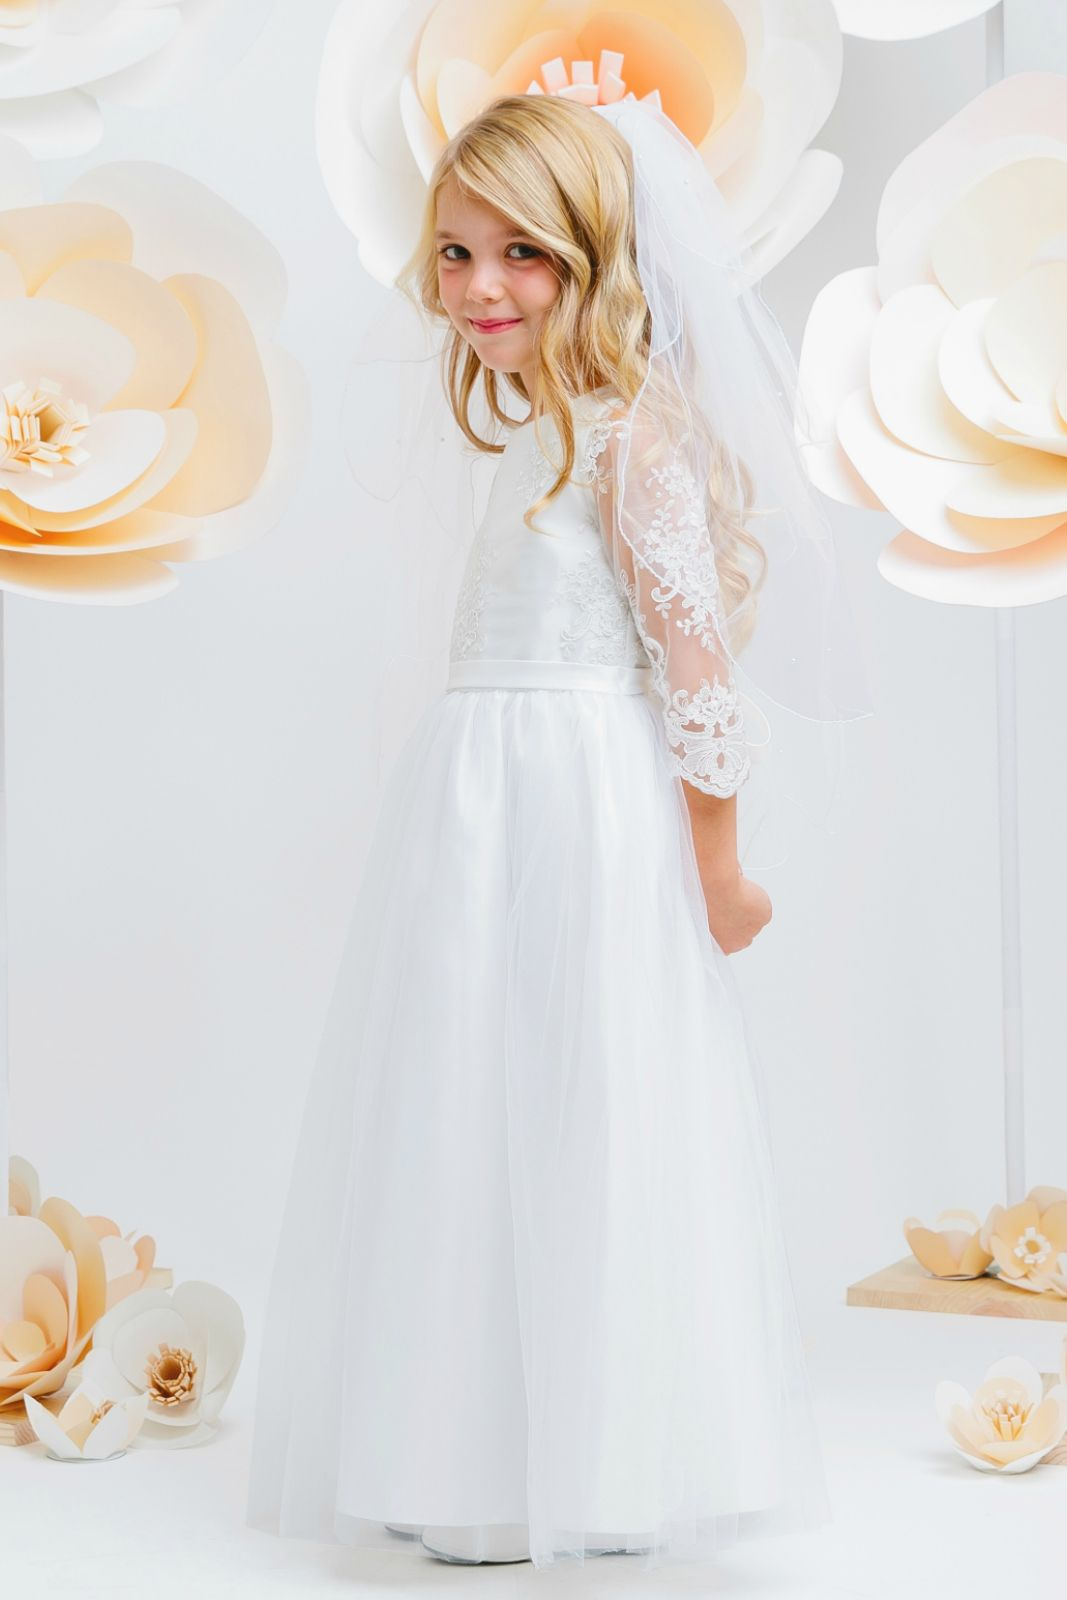 e8b98ea7a7fc SK_681 - Girls Dress Style 681 - WHITE Embroidered Lace Dress with Long  Scalloped Sleeves - White - Flower Girl Dresses - Flower Girl Dress For Less